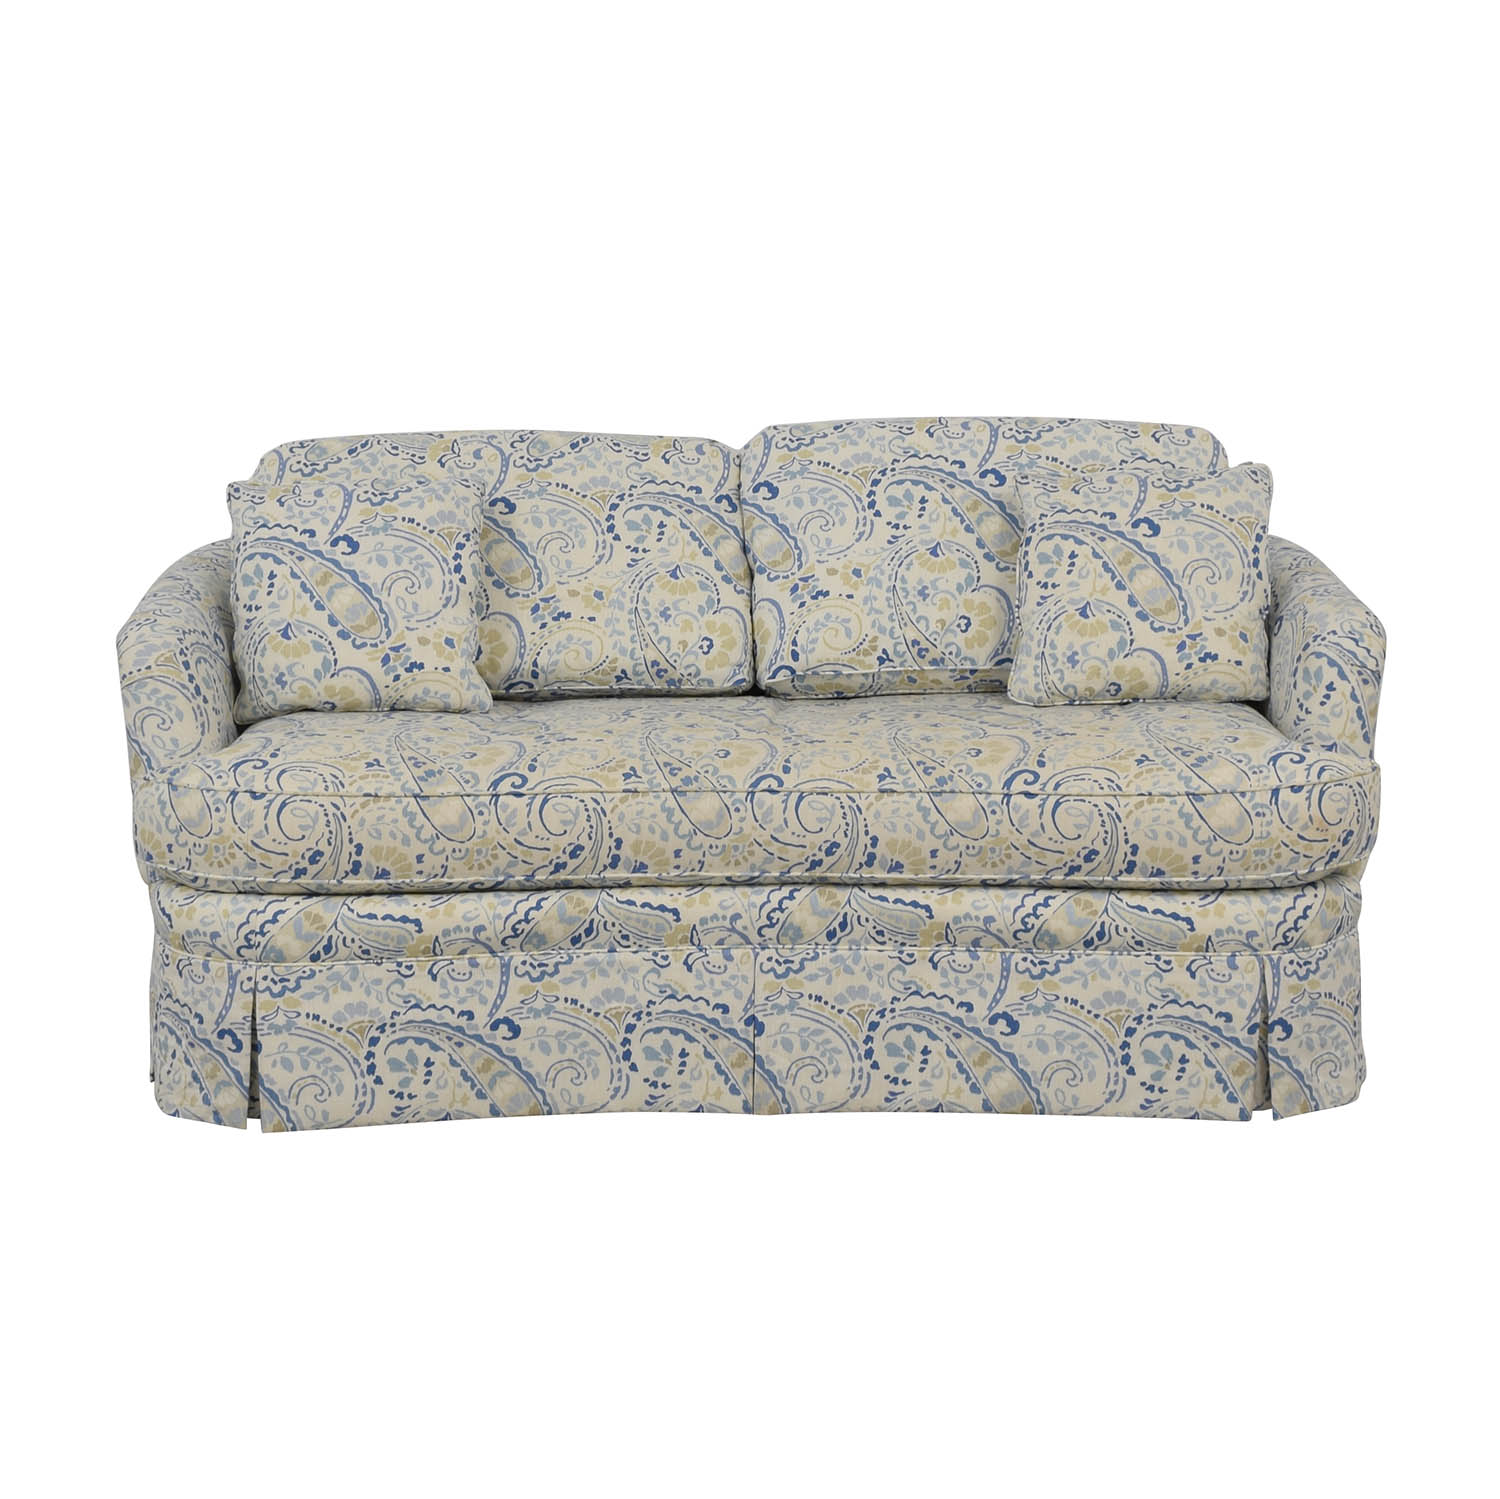 buy Taylor King Taylor King Multi-Colored Single Cushion Love Seat online